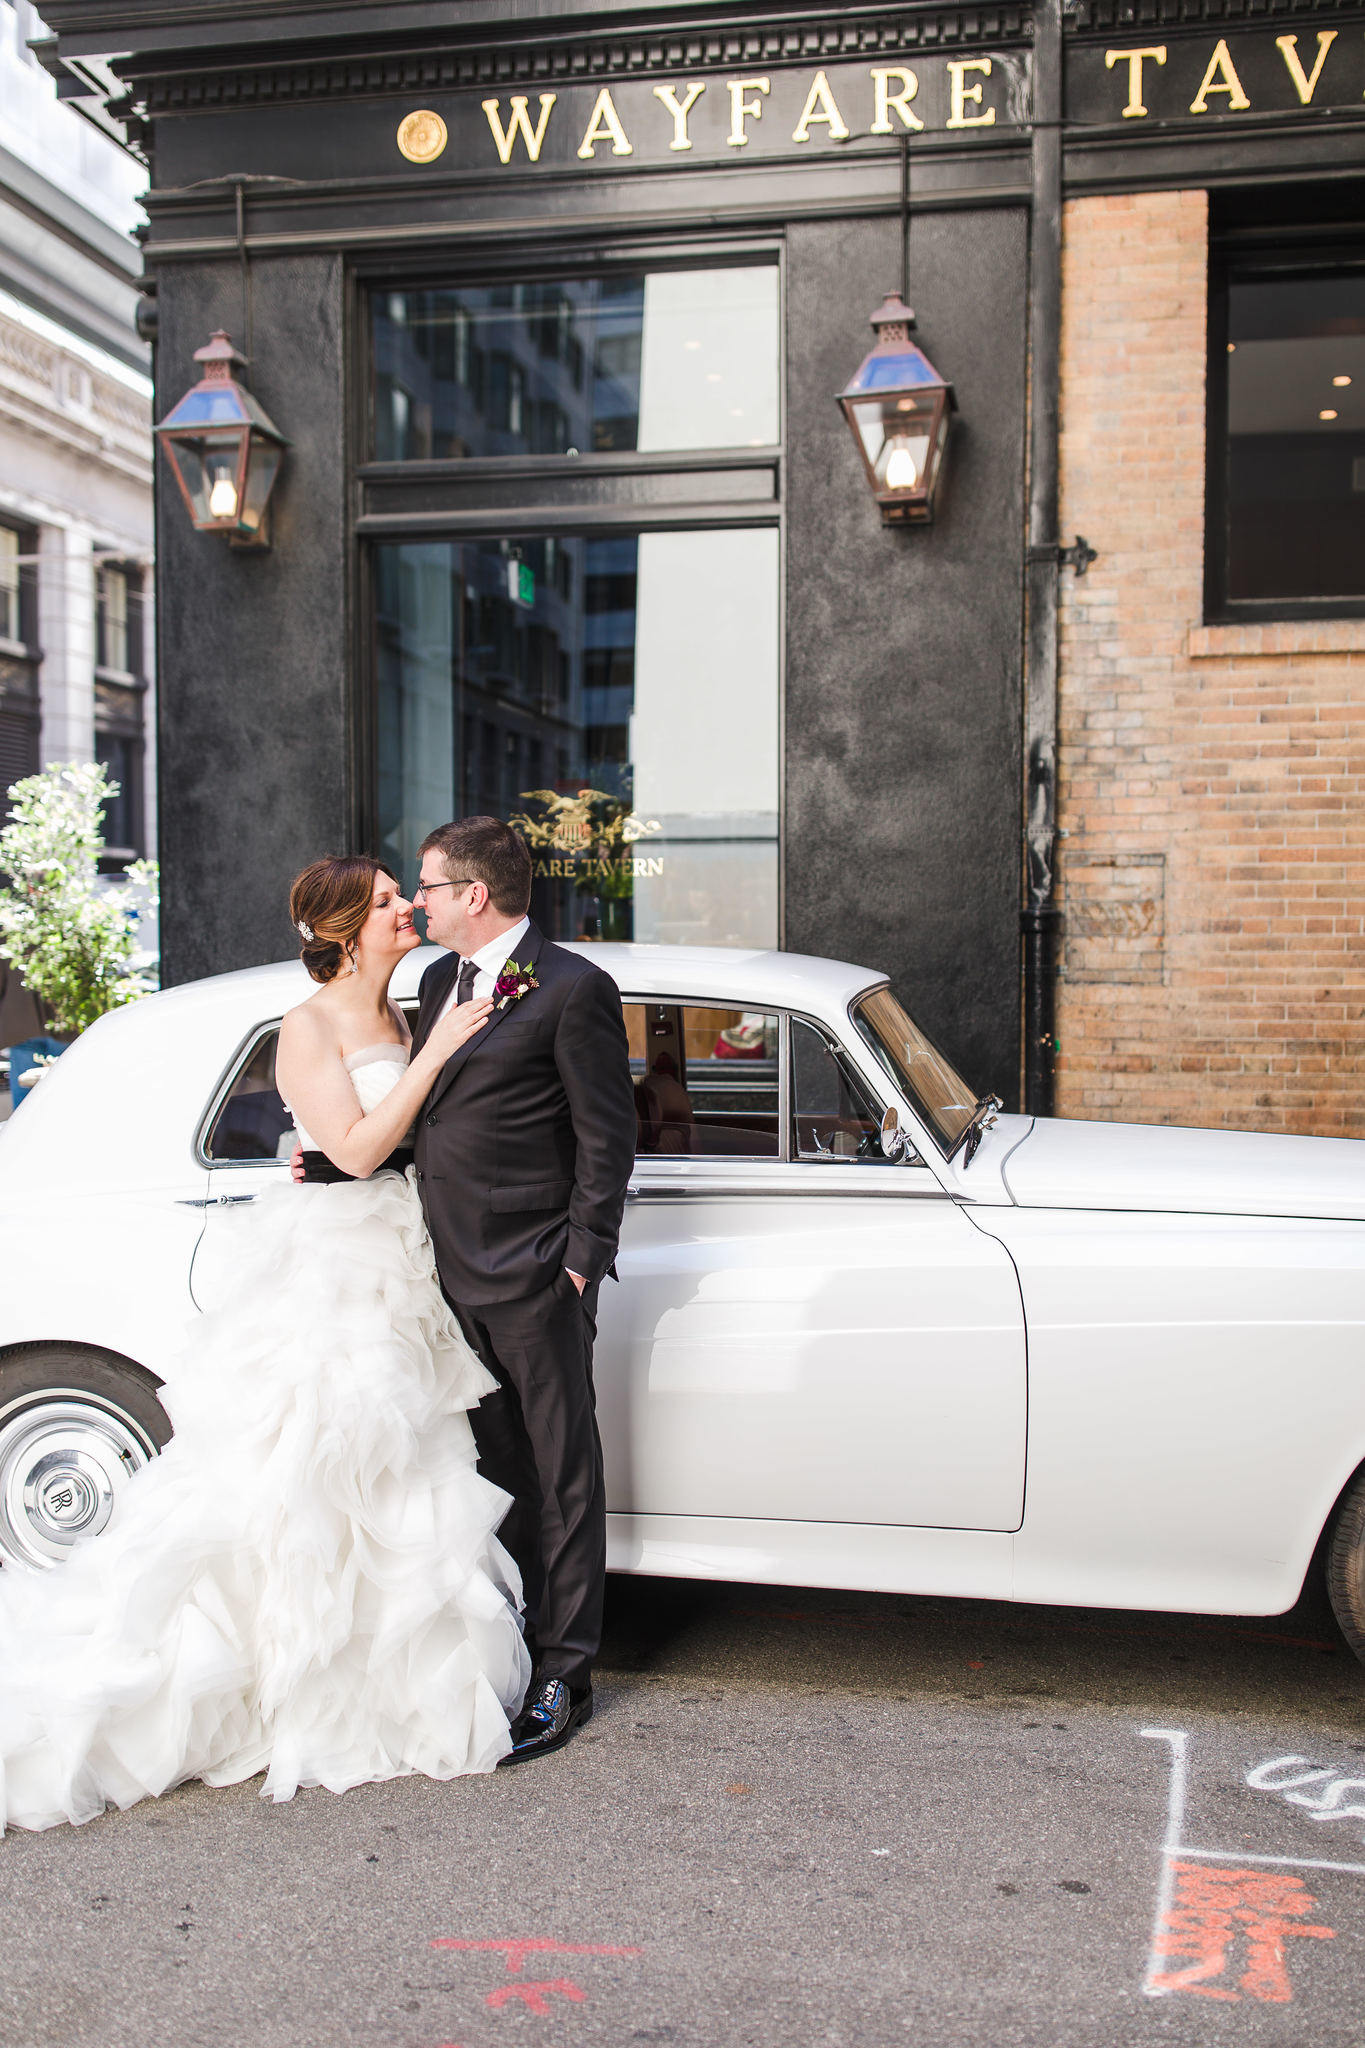 Chic Black and White Stripe Motif Wedding at Wayfare Tavern